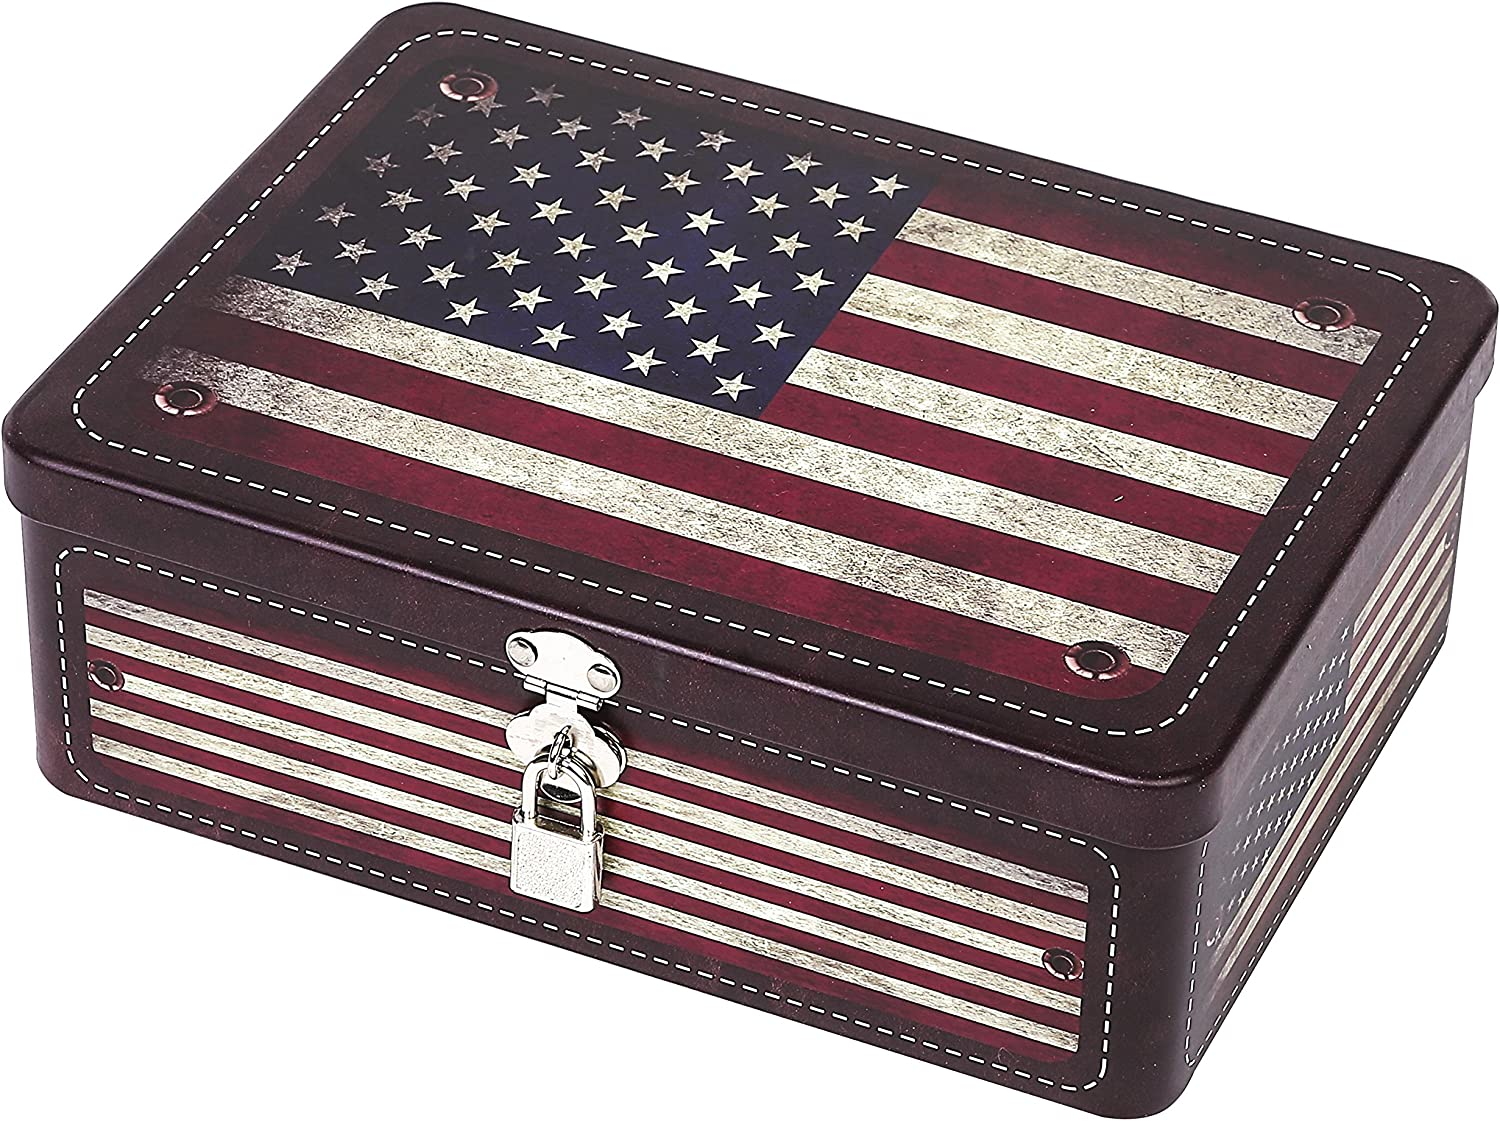 MyGift Retro Style American Flag Tin Storage Box with Padlock, Decorative Metal Organizer Case